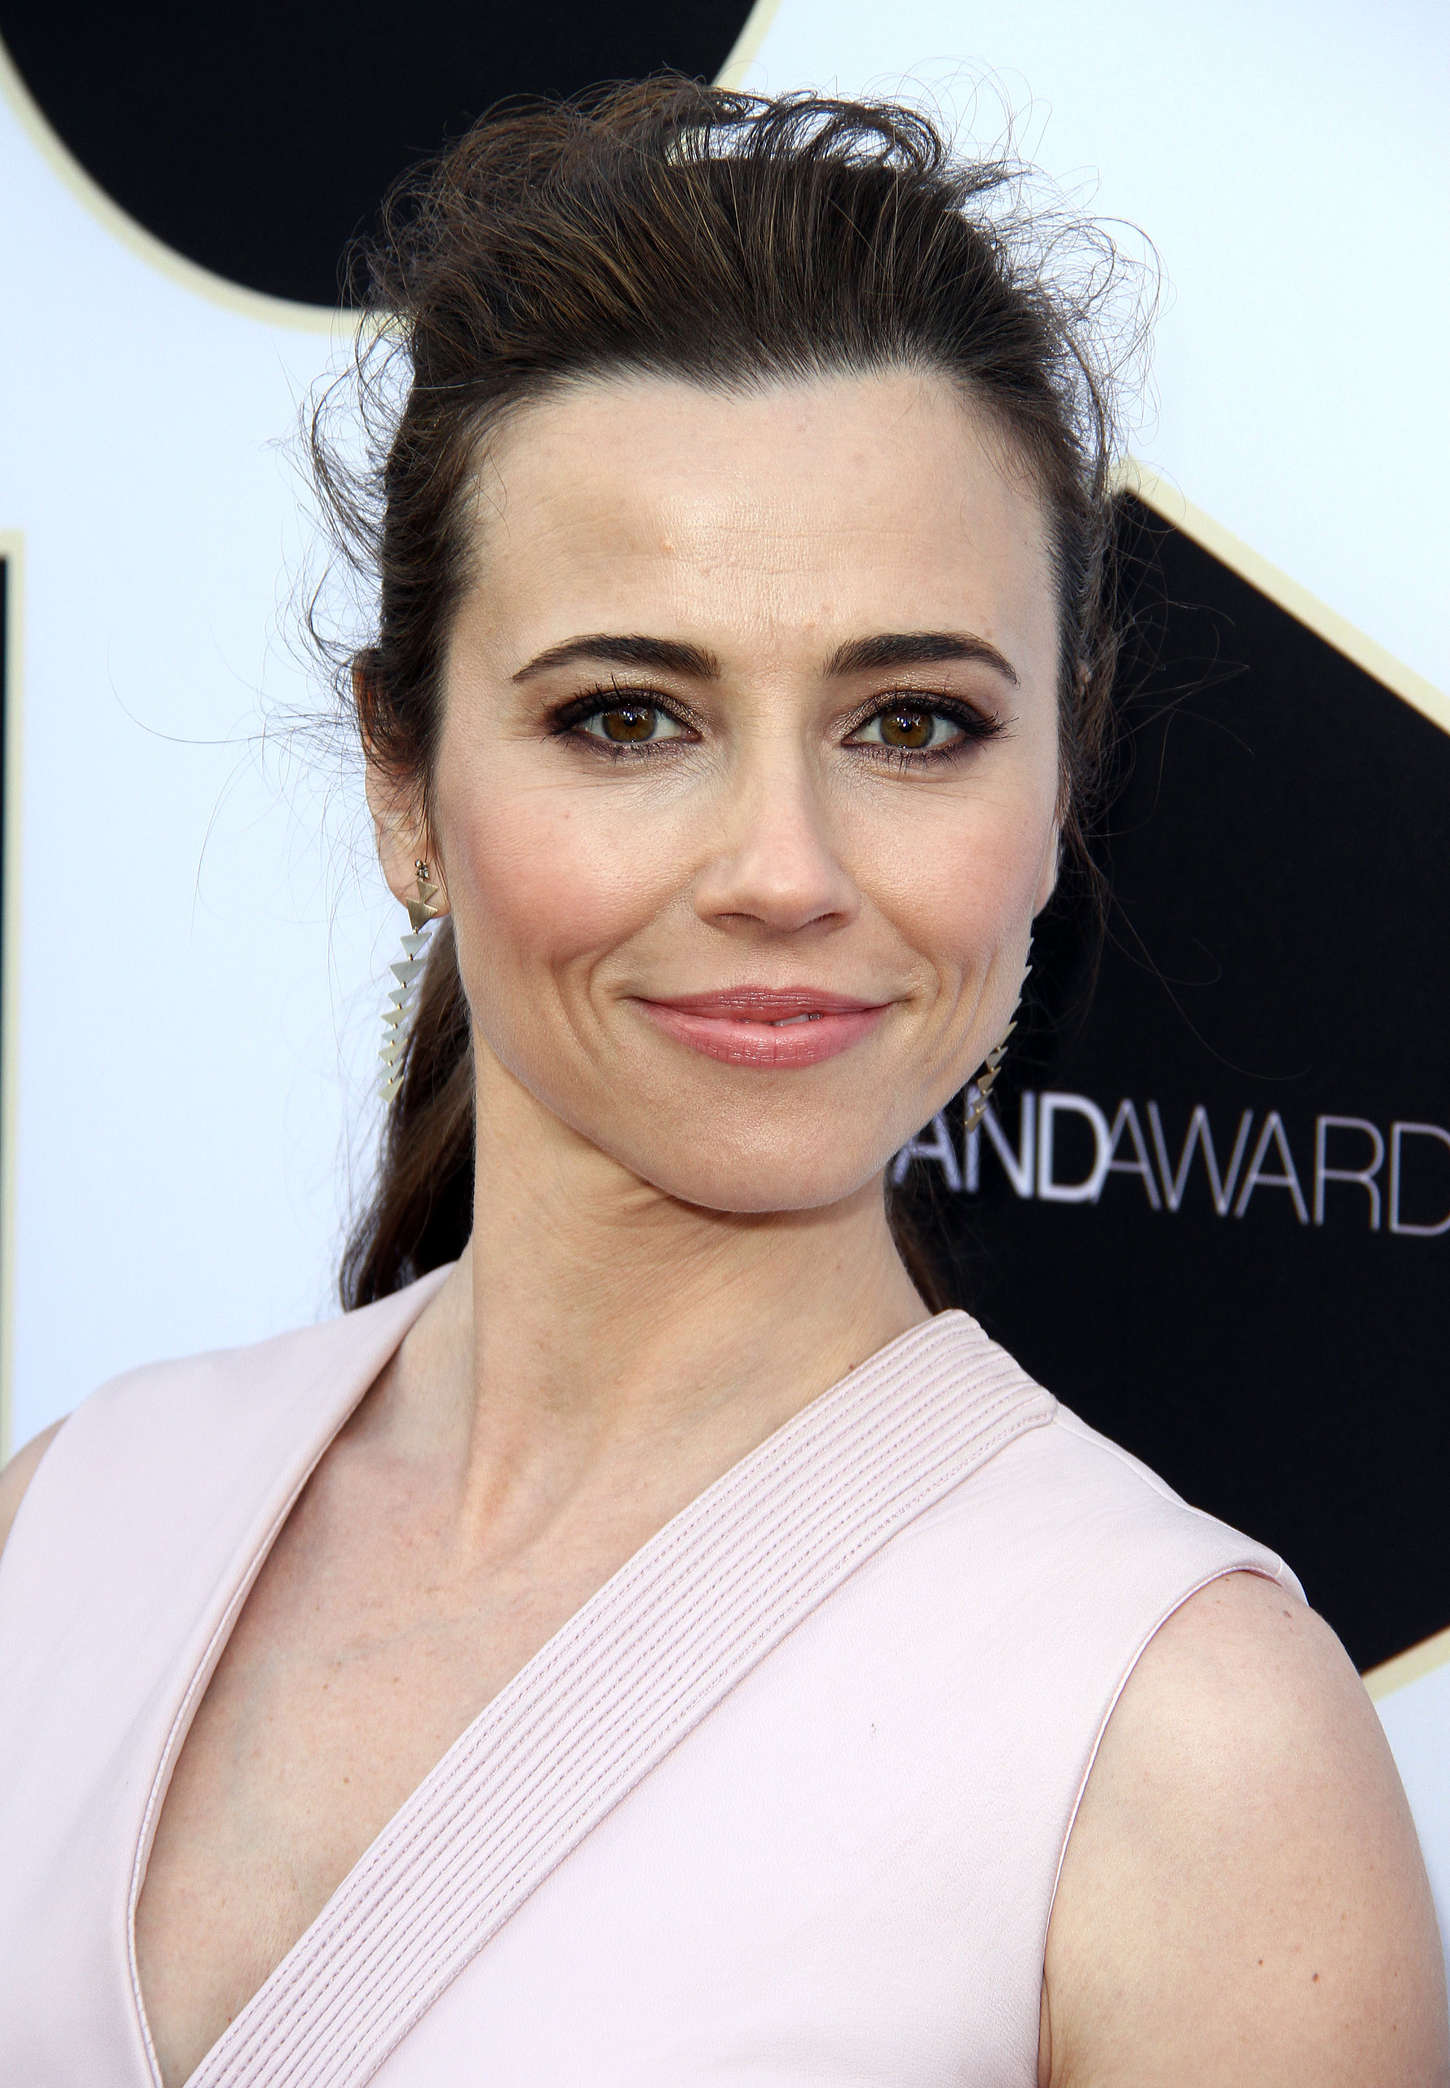 linda cardellini and jason segellinda cardellini wallpapers, linda cardellini gravity falls, linda cardellini and jason segel, linda cardellini husband, linda cardellini insta, linda cardellini founder, linda cardellini legally blonde, linda cardellini ellen page, linda cardellini freaks and geeks, linda cardellini instagram, linda cardellini avengers